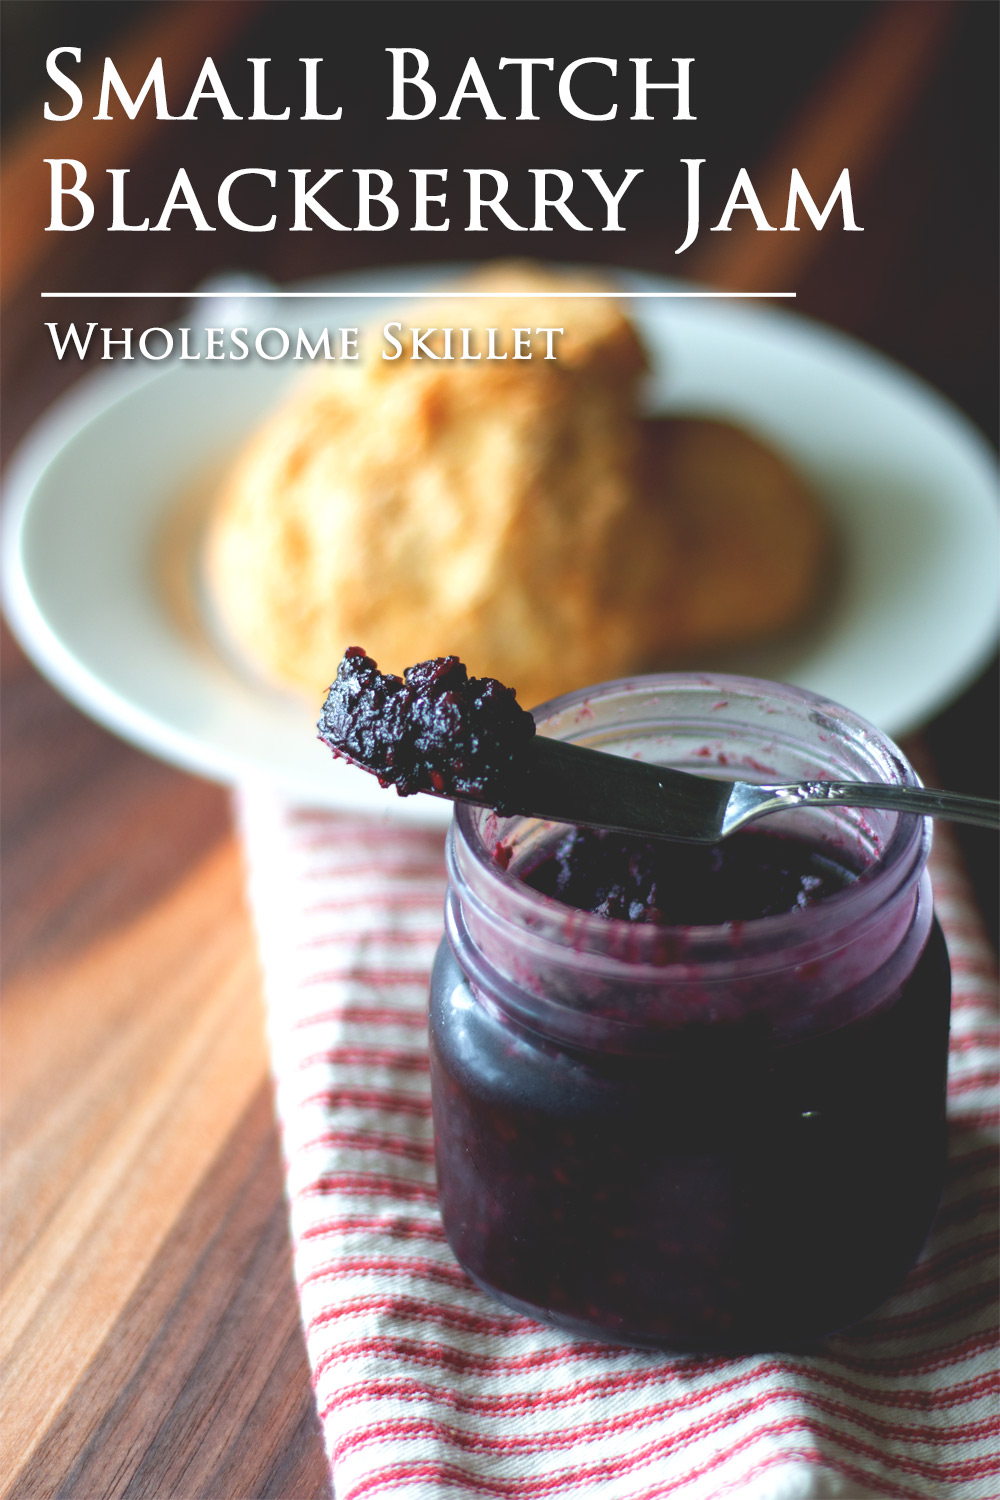 How to Make a Small Batch of Blackberry Jam | Wholesome Skillet